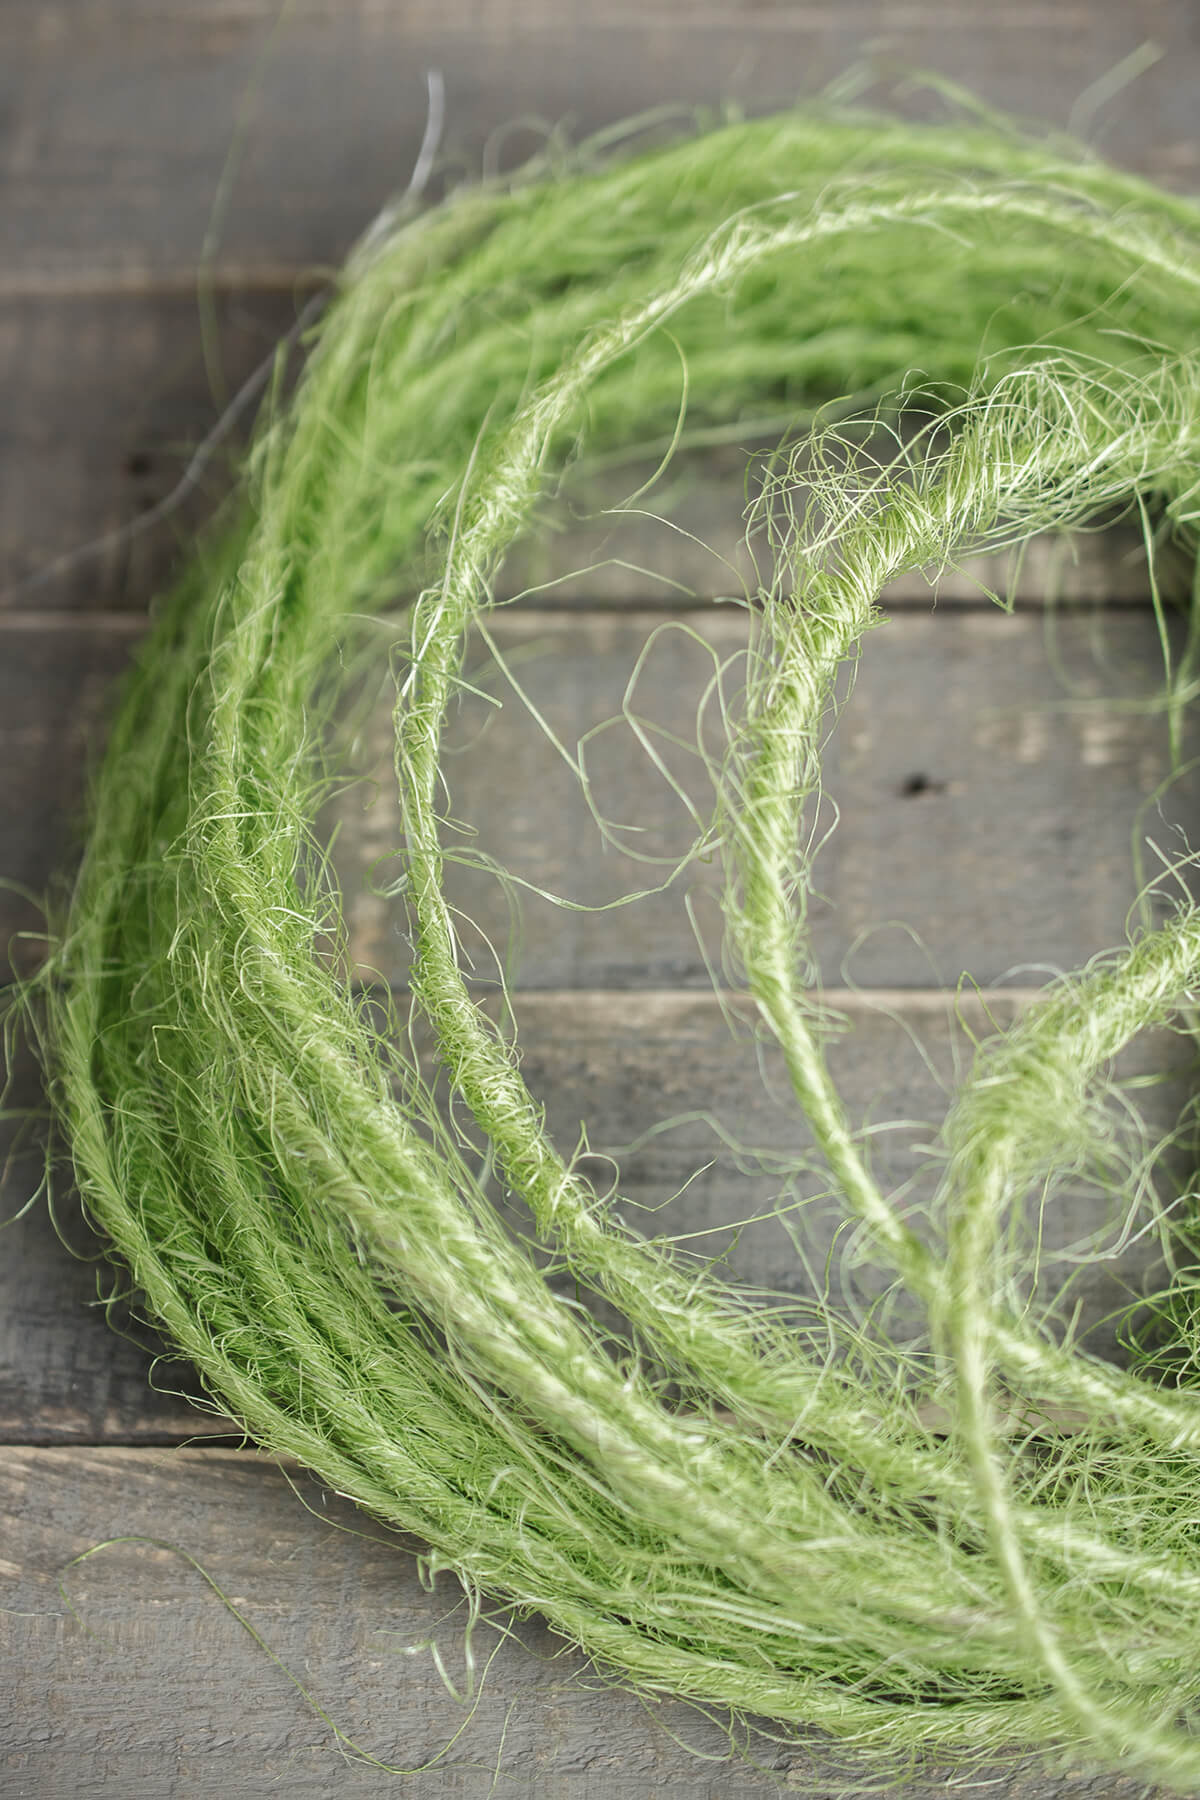 Green Sisal Covered Wire Roping 3.5mm x 33 Feet, Floral Supplies